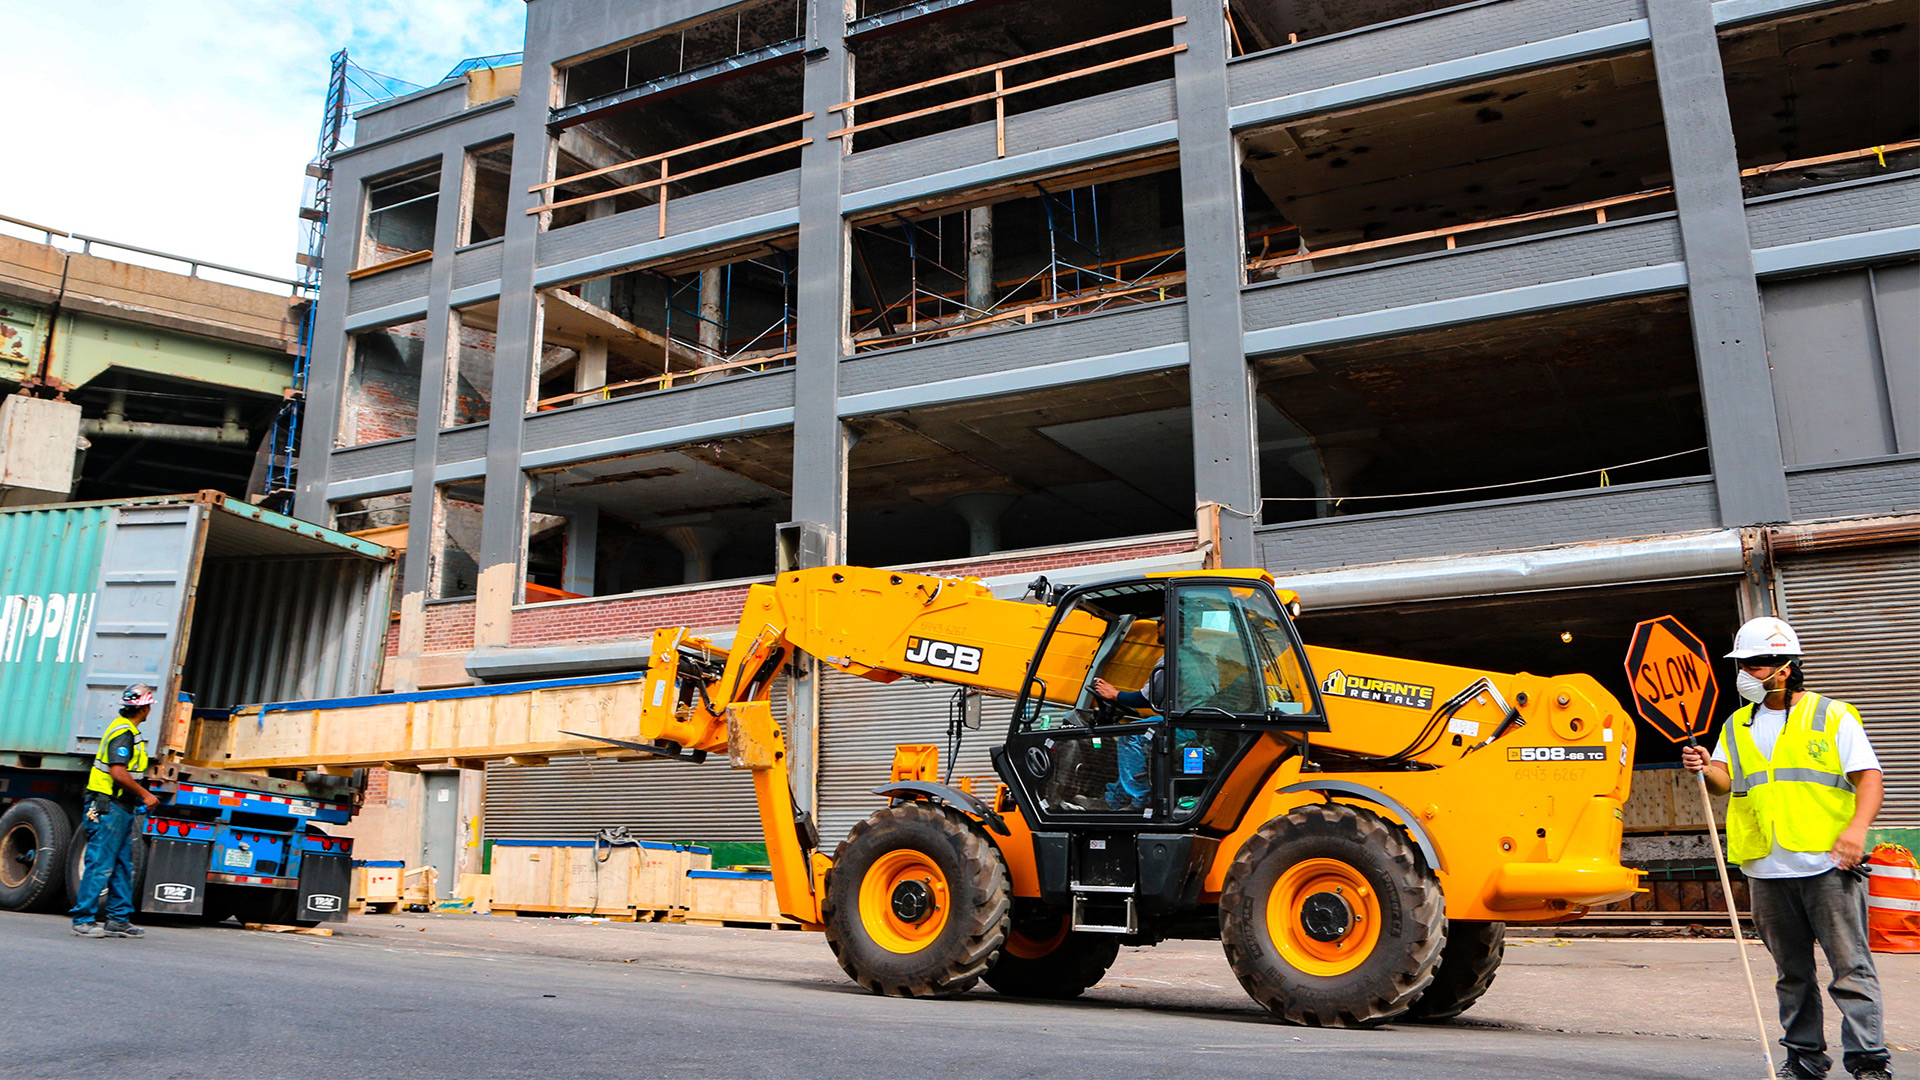 JCB Telehandler in New York City with construction workers